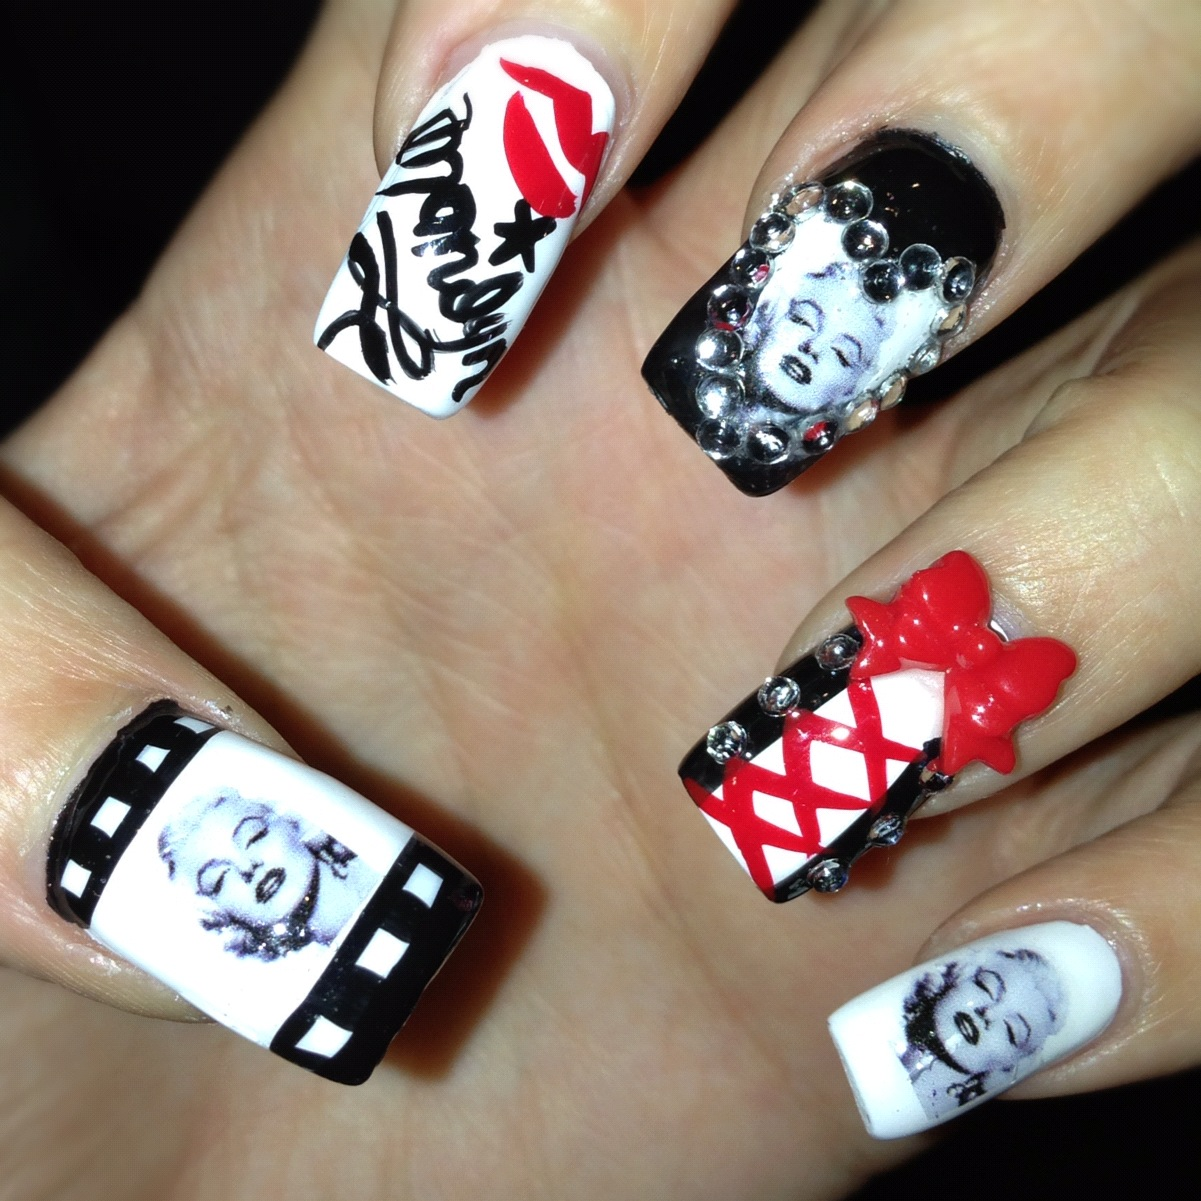 marilyn monroe nails | my pretty little nails